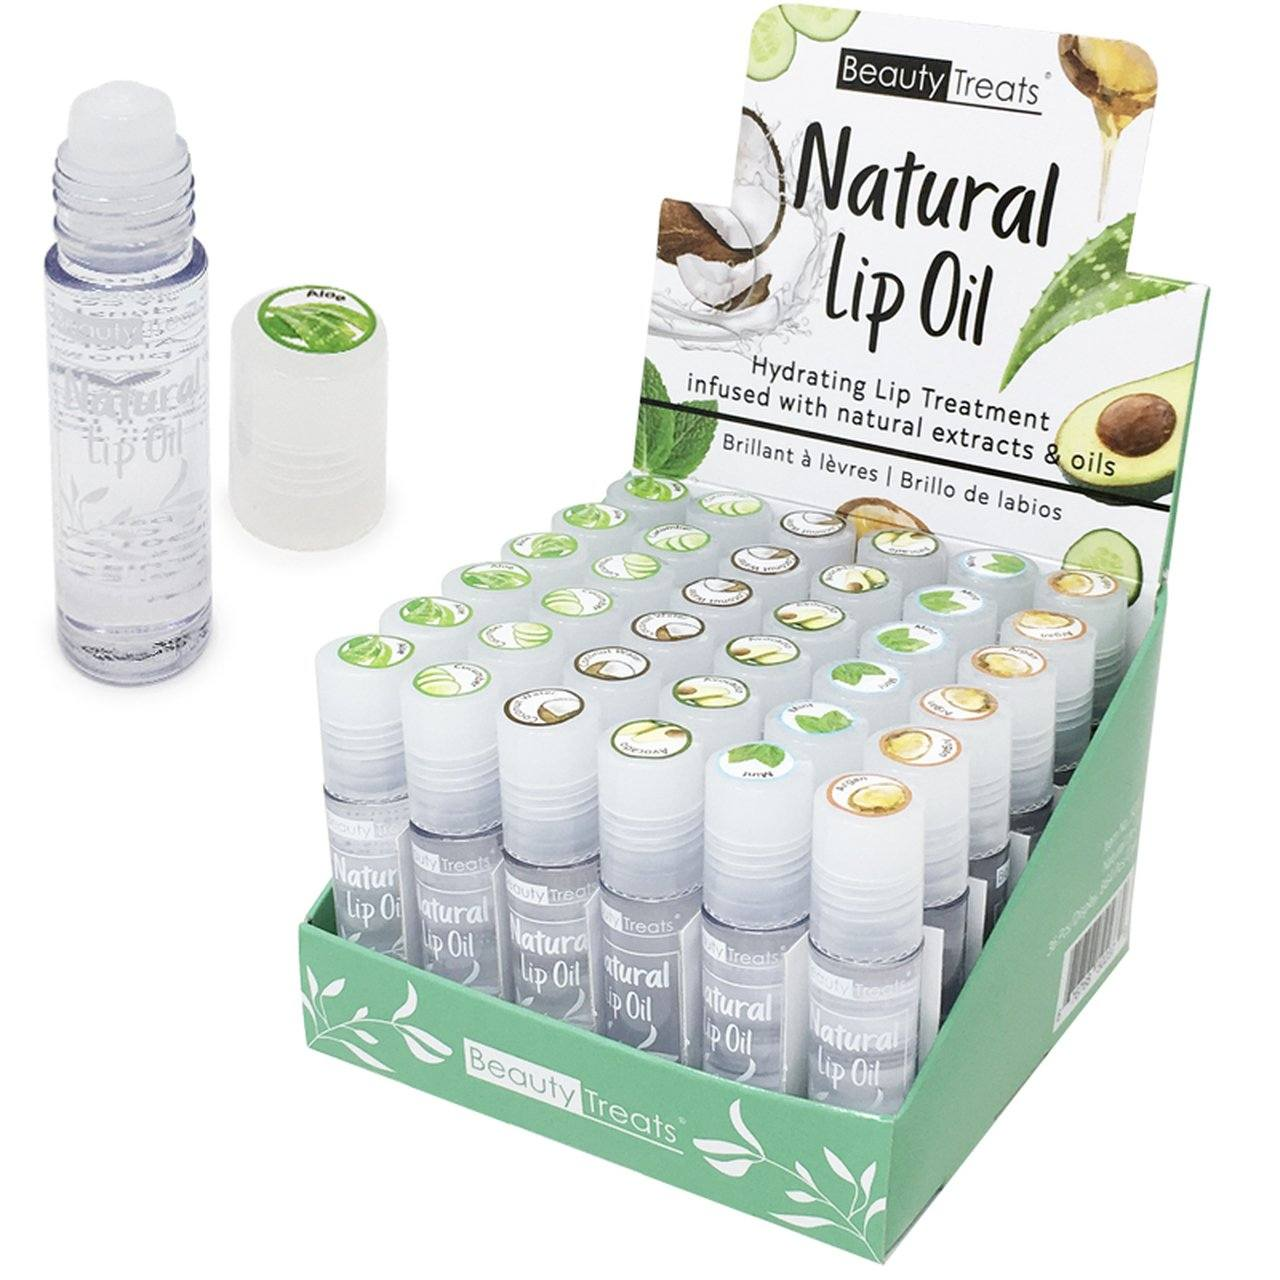 Beauty Treats Natural Lip Oil Set #502C (36PC)